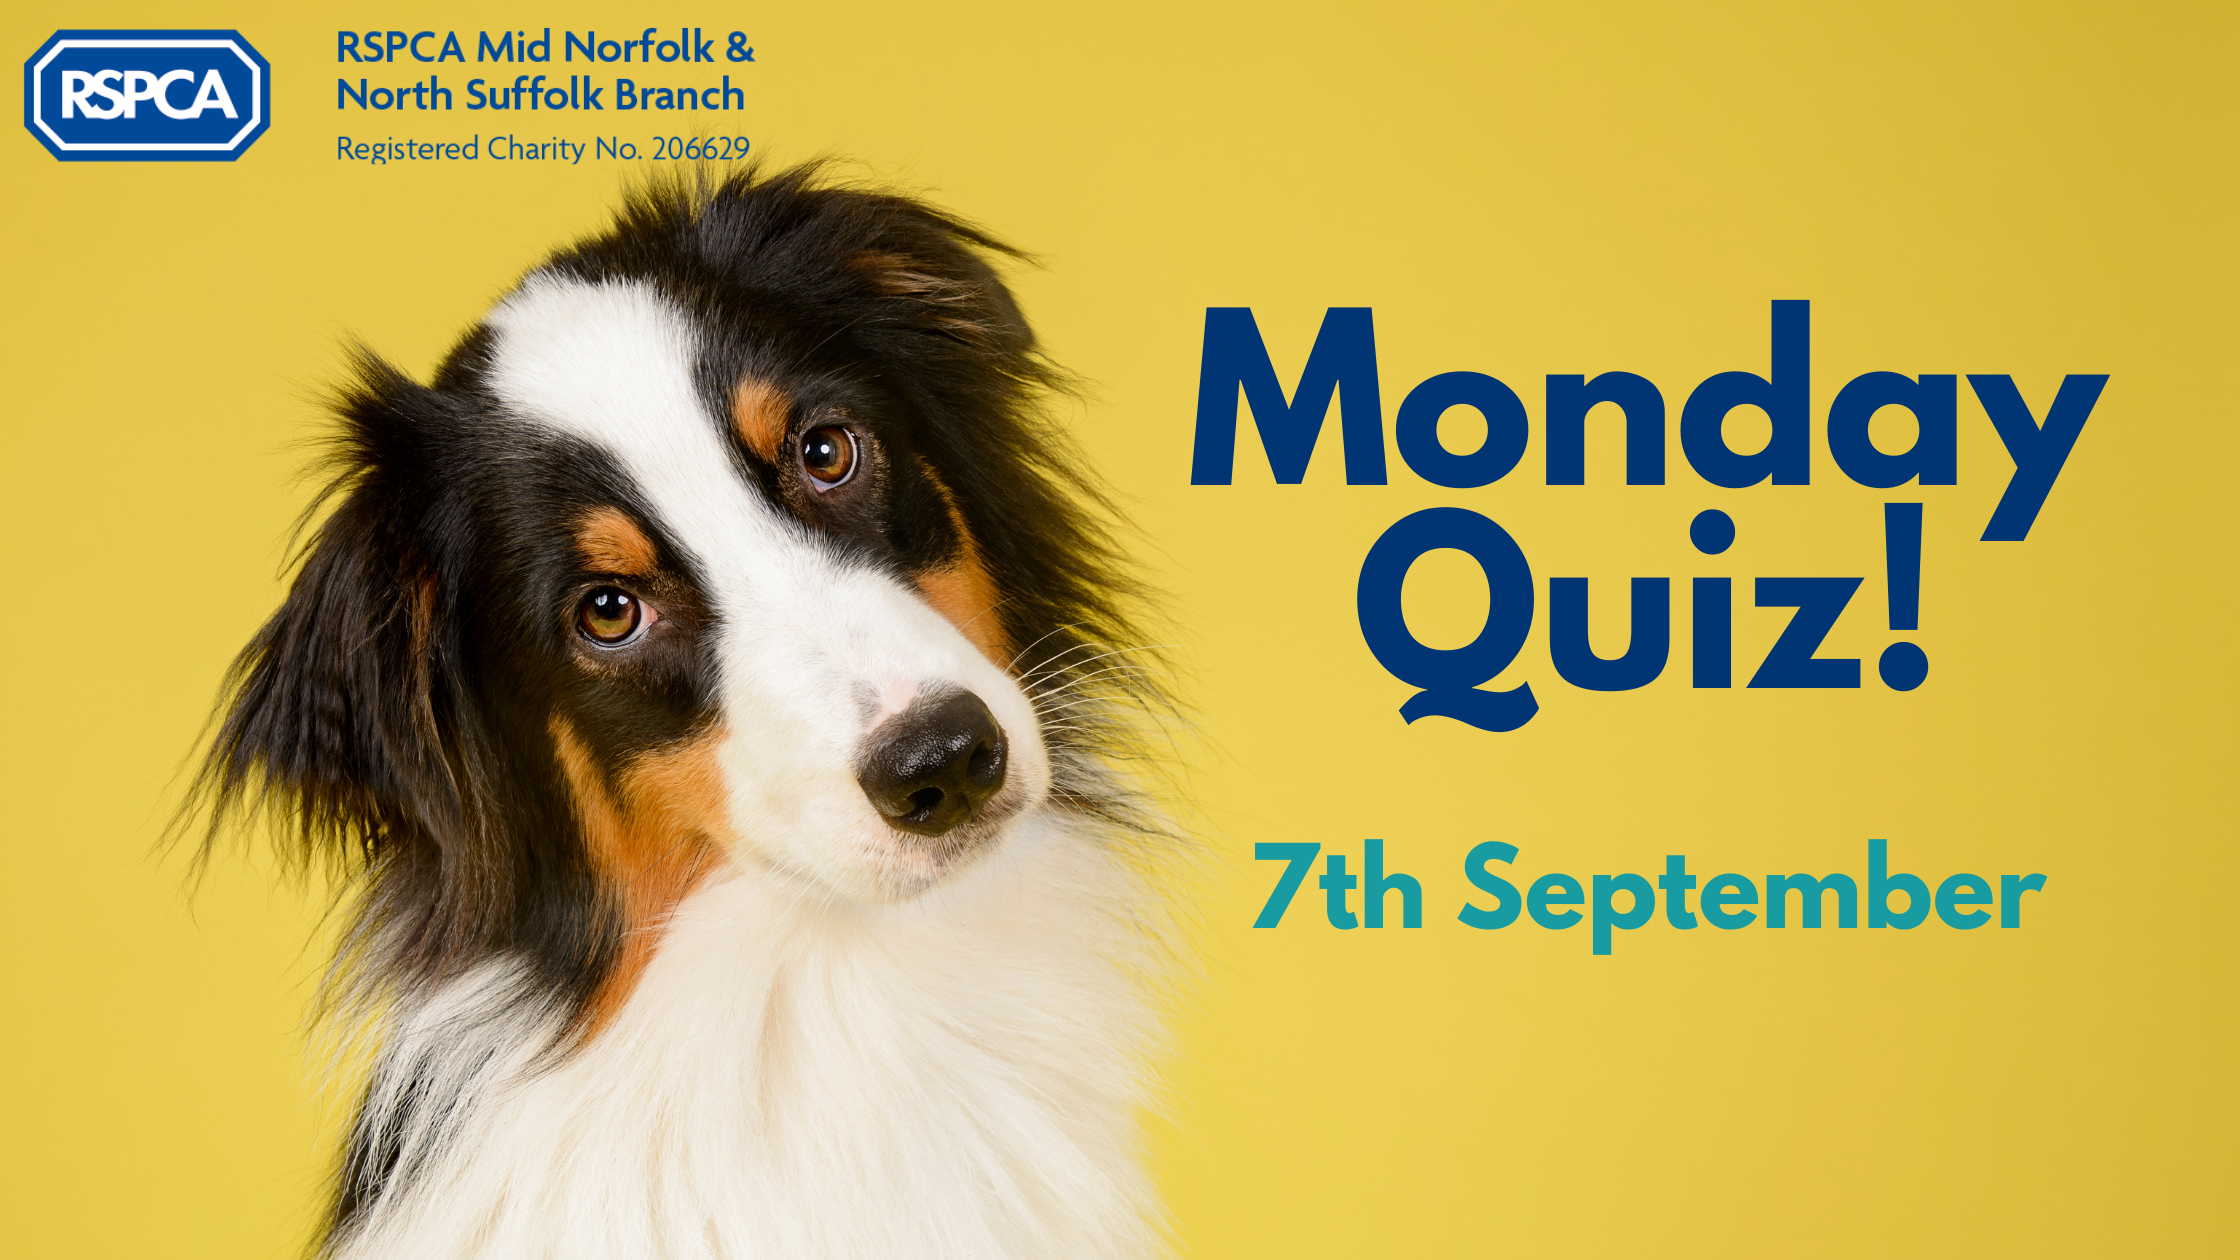 Monday Quiz! – 7th September